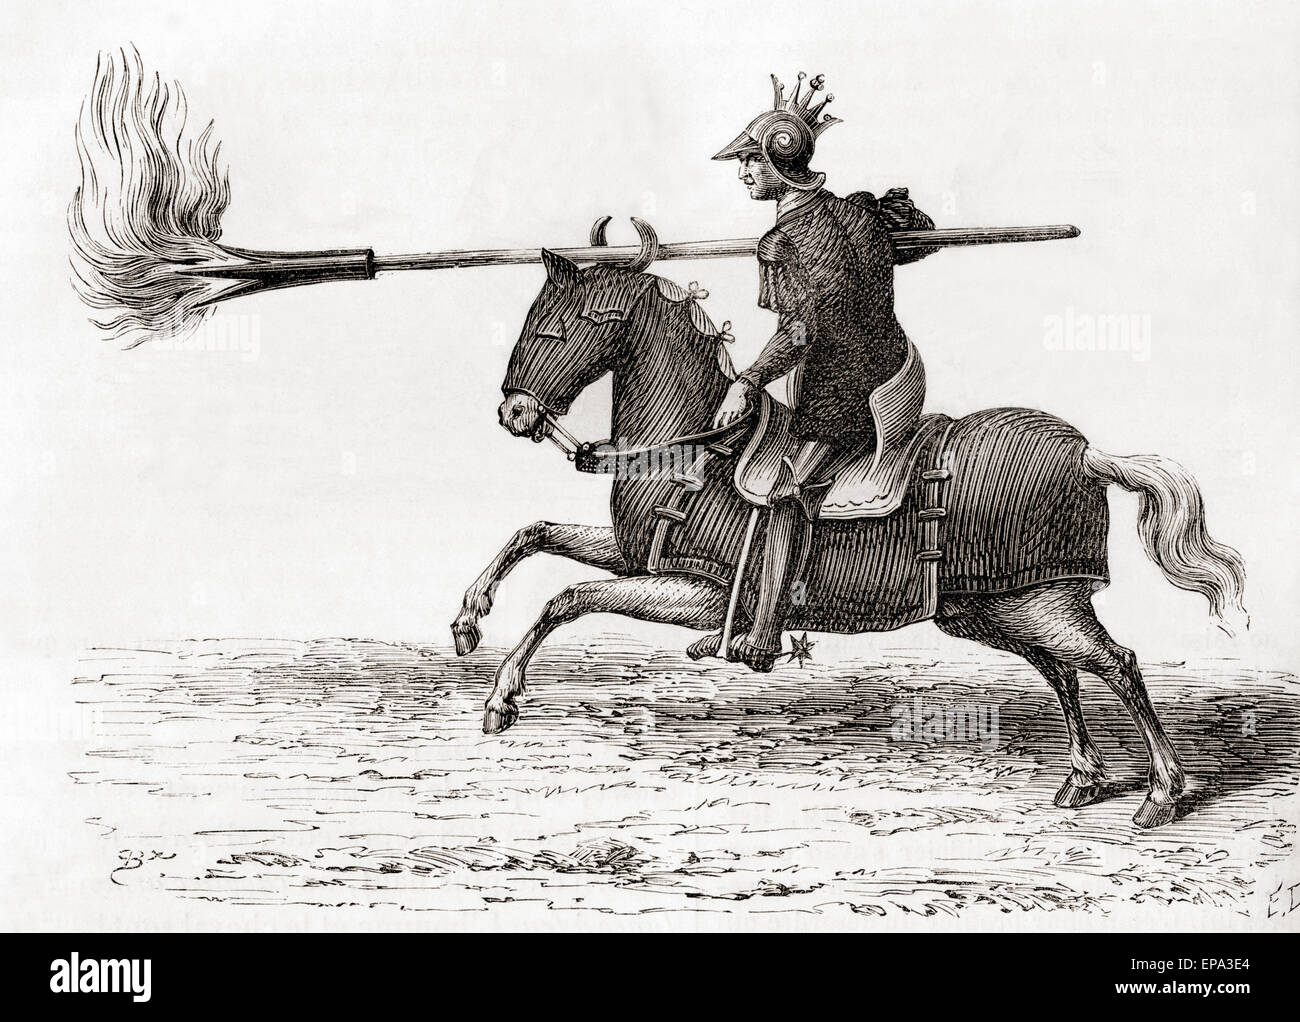 A medieval knight carrying a fire lance, or fire spear, one of the first gunpowder weapons in the world. - Stock Image